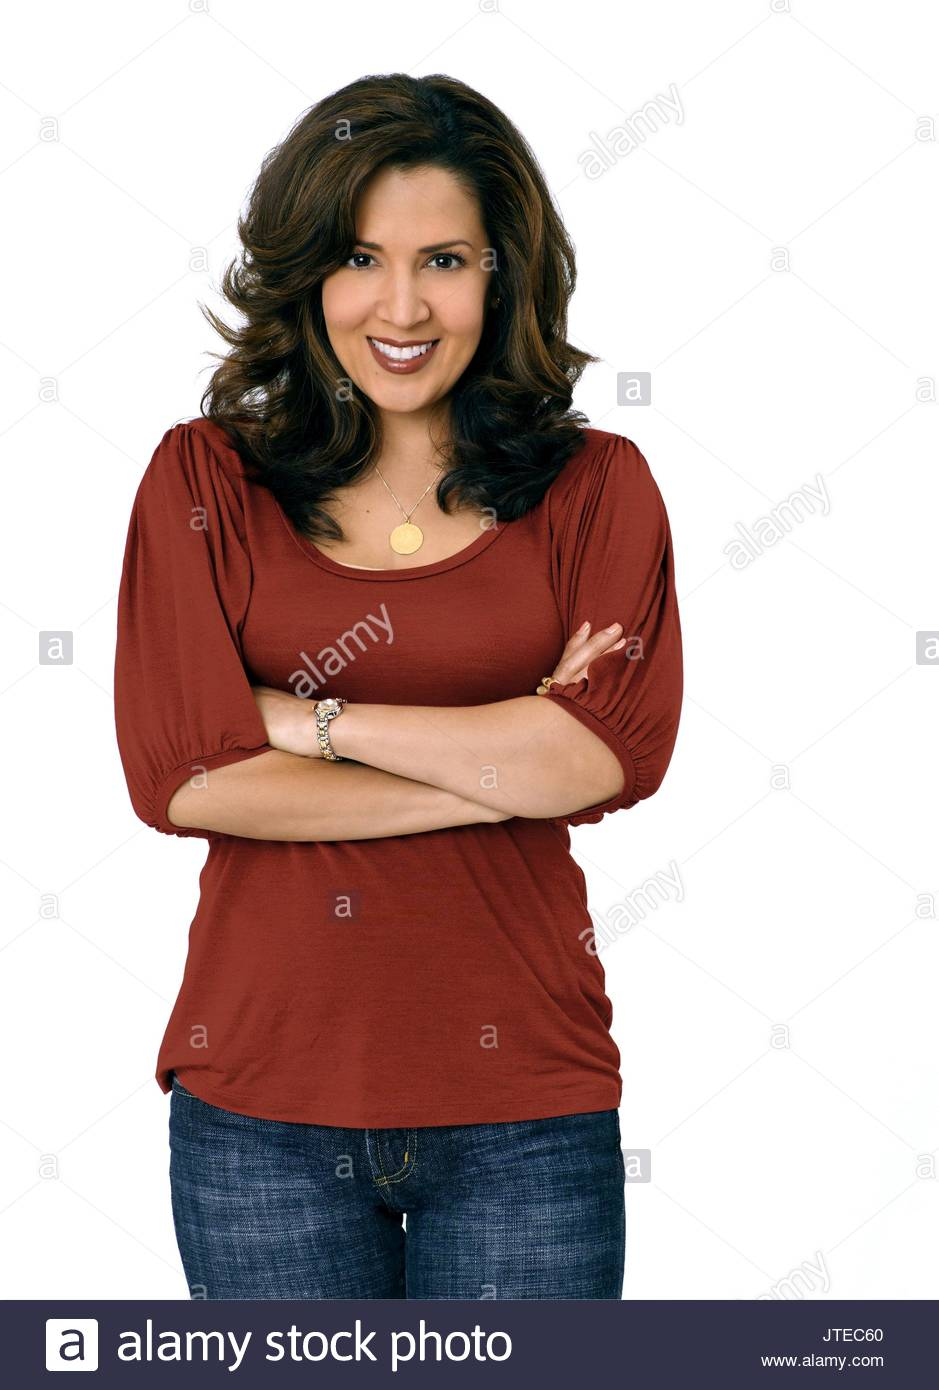 Maria canals barrera hot thought differently